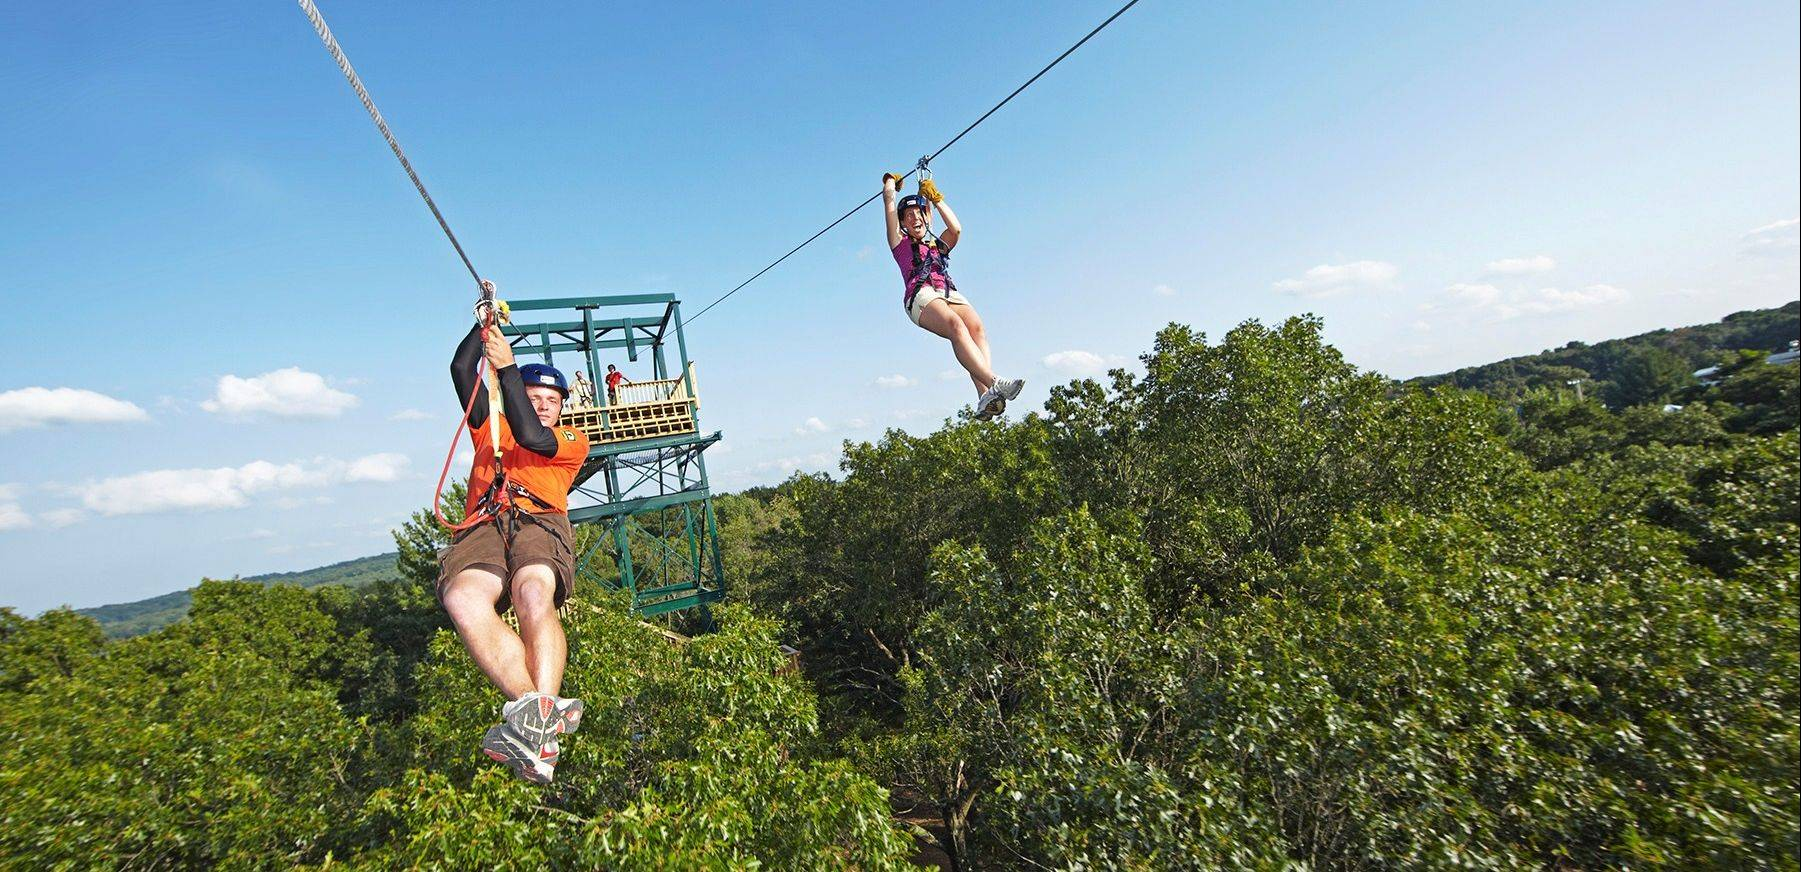 Bigfoot Zipline takes participants over water.